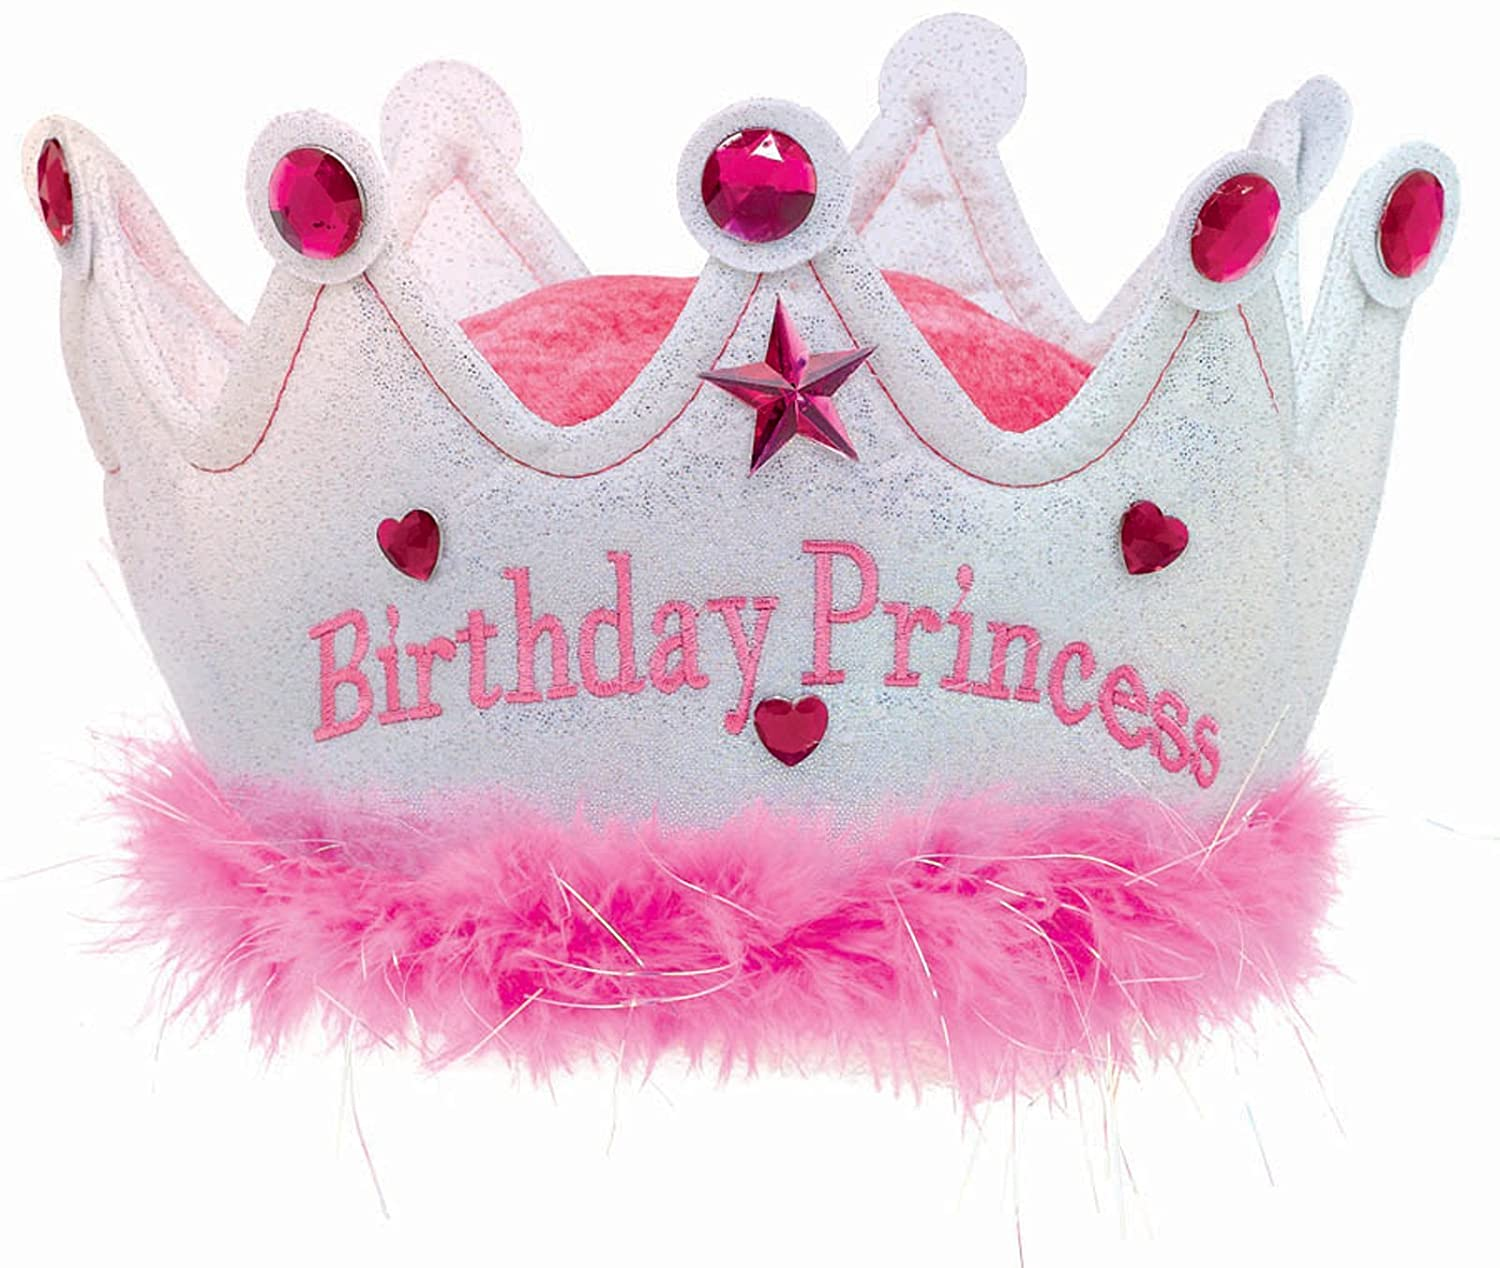 birthday crown, Personalized Crown, 30th birthday crown,women birthday Crown, Adult birthday crown, 21 birthday Crown, 40th birthday crown APPLEMINTHOUSE 5 out of 5 stars.